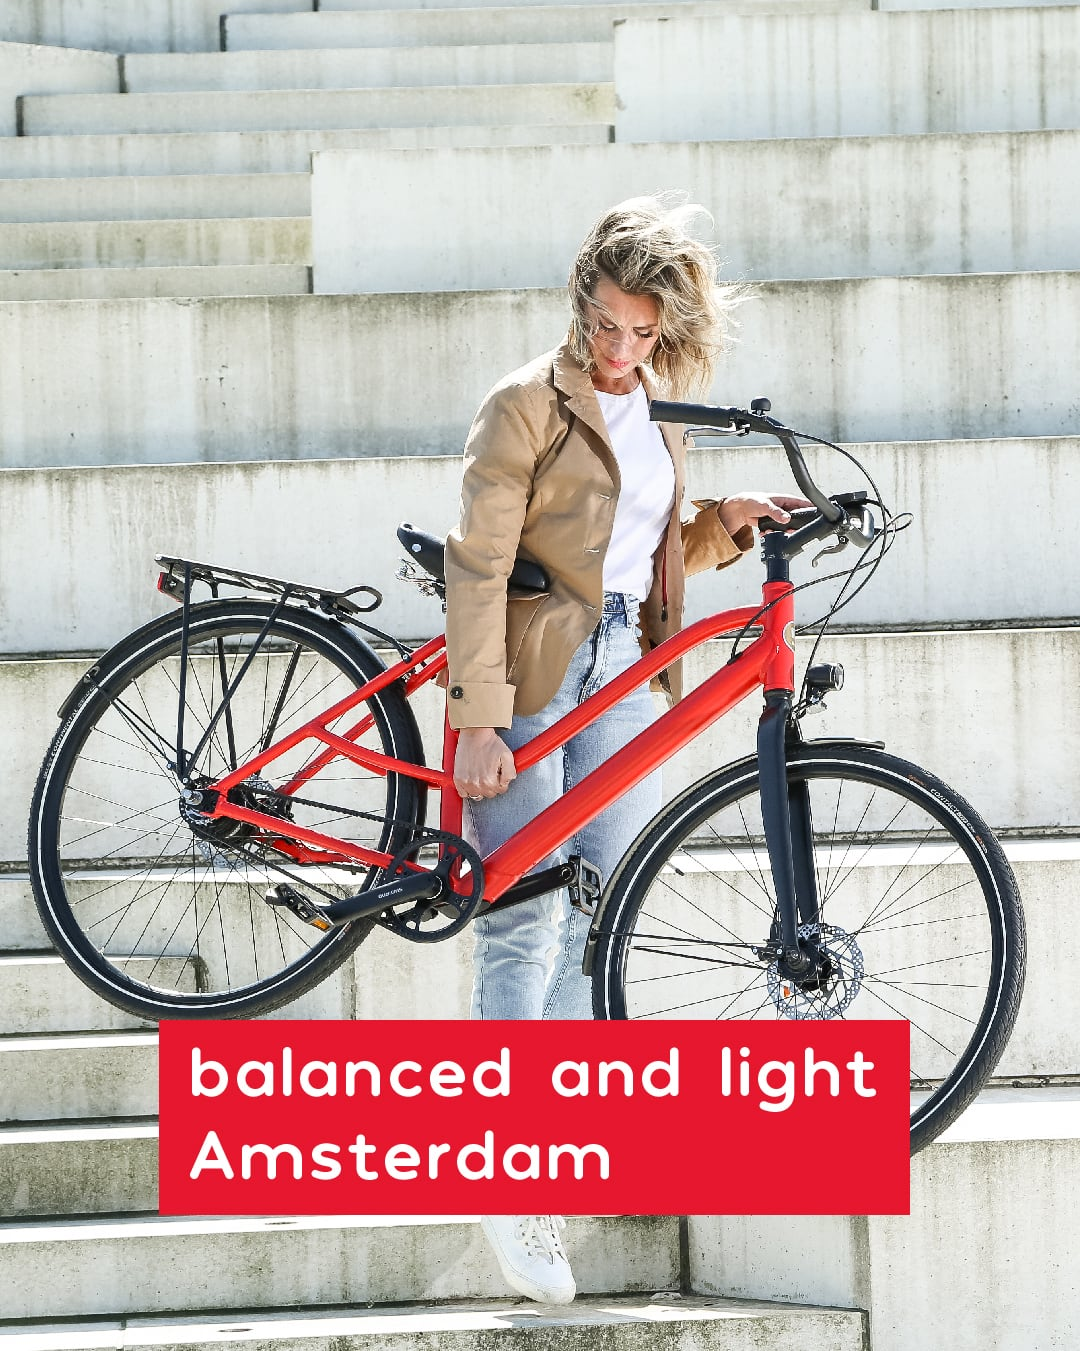 Well-balanced Amsterdam, impetuous Milano or versatile Brussels? Which one is perfect for you?